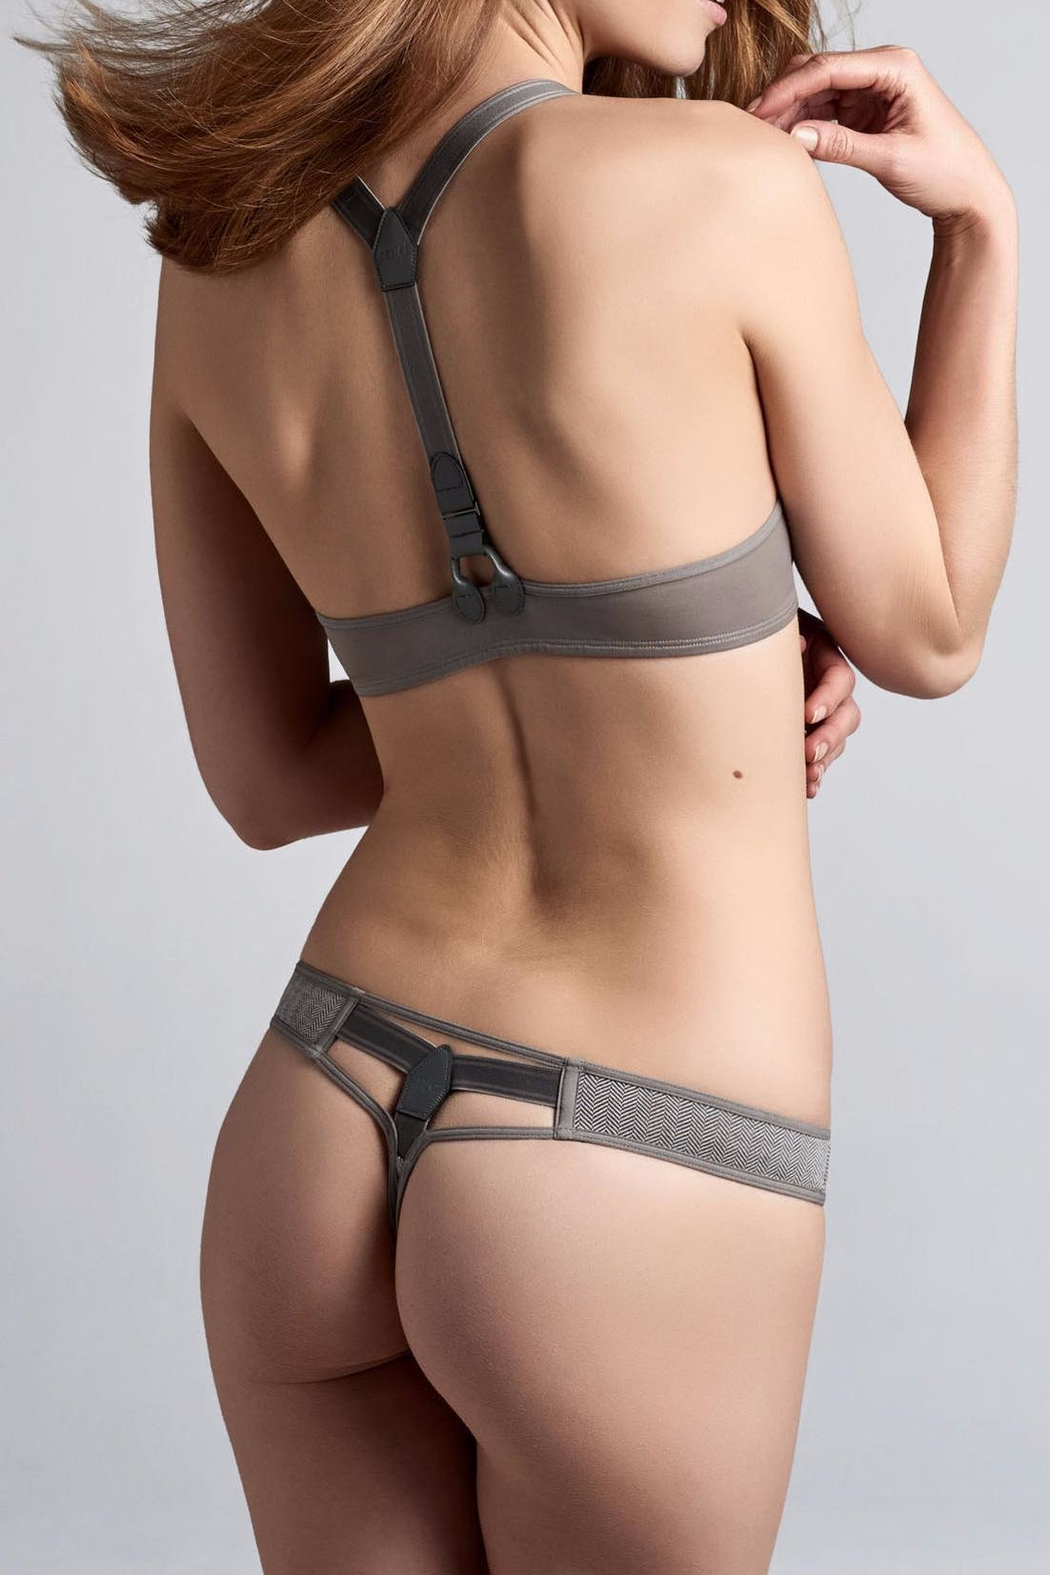 marlies dekkers Herringbone Cotton Thong - Front Cropped Image